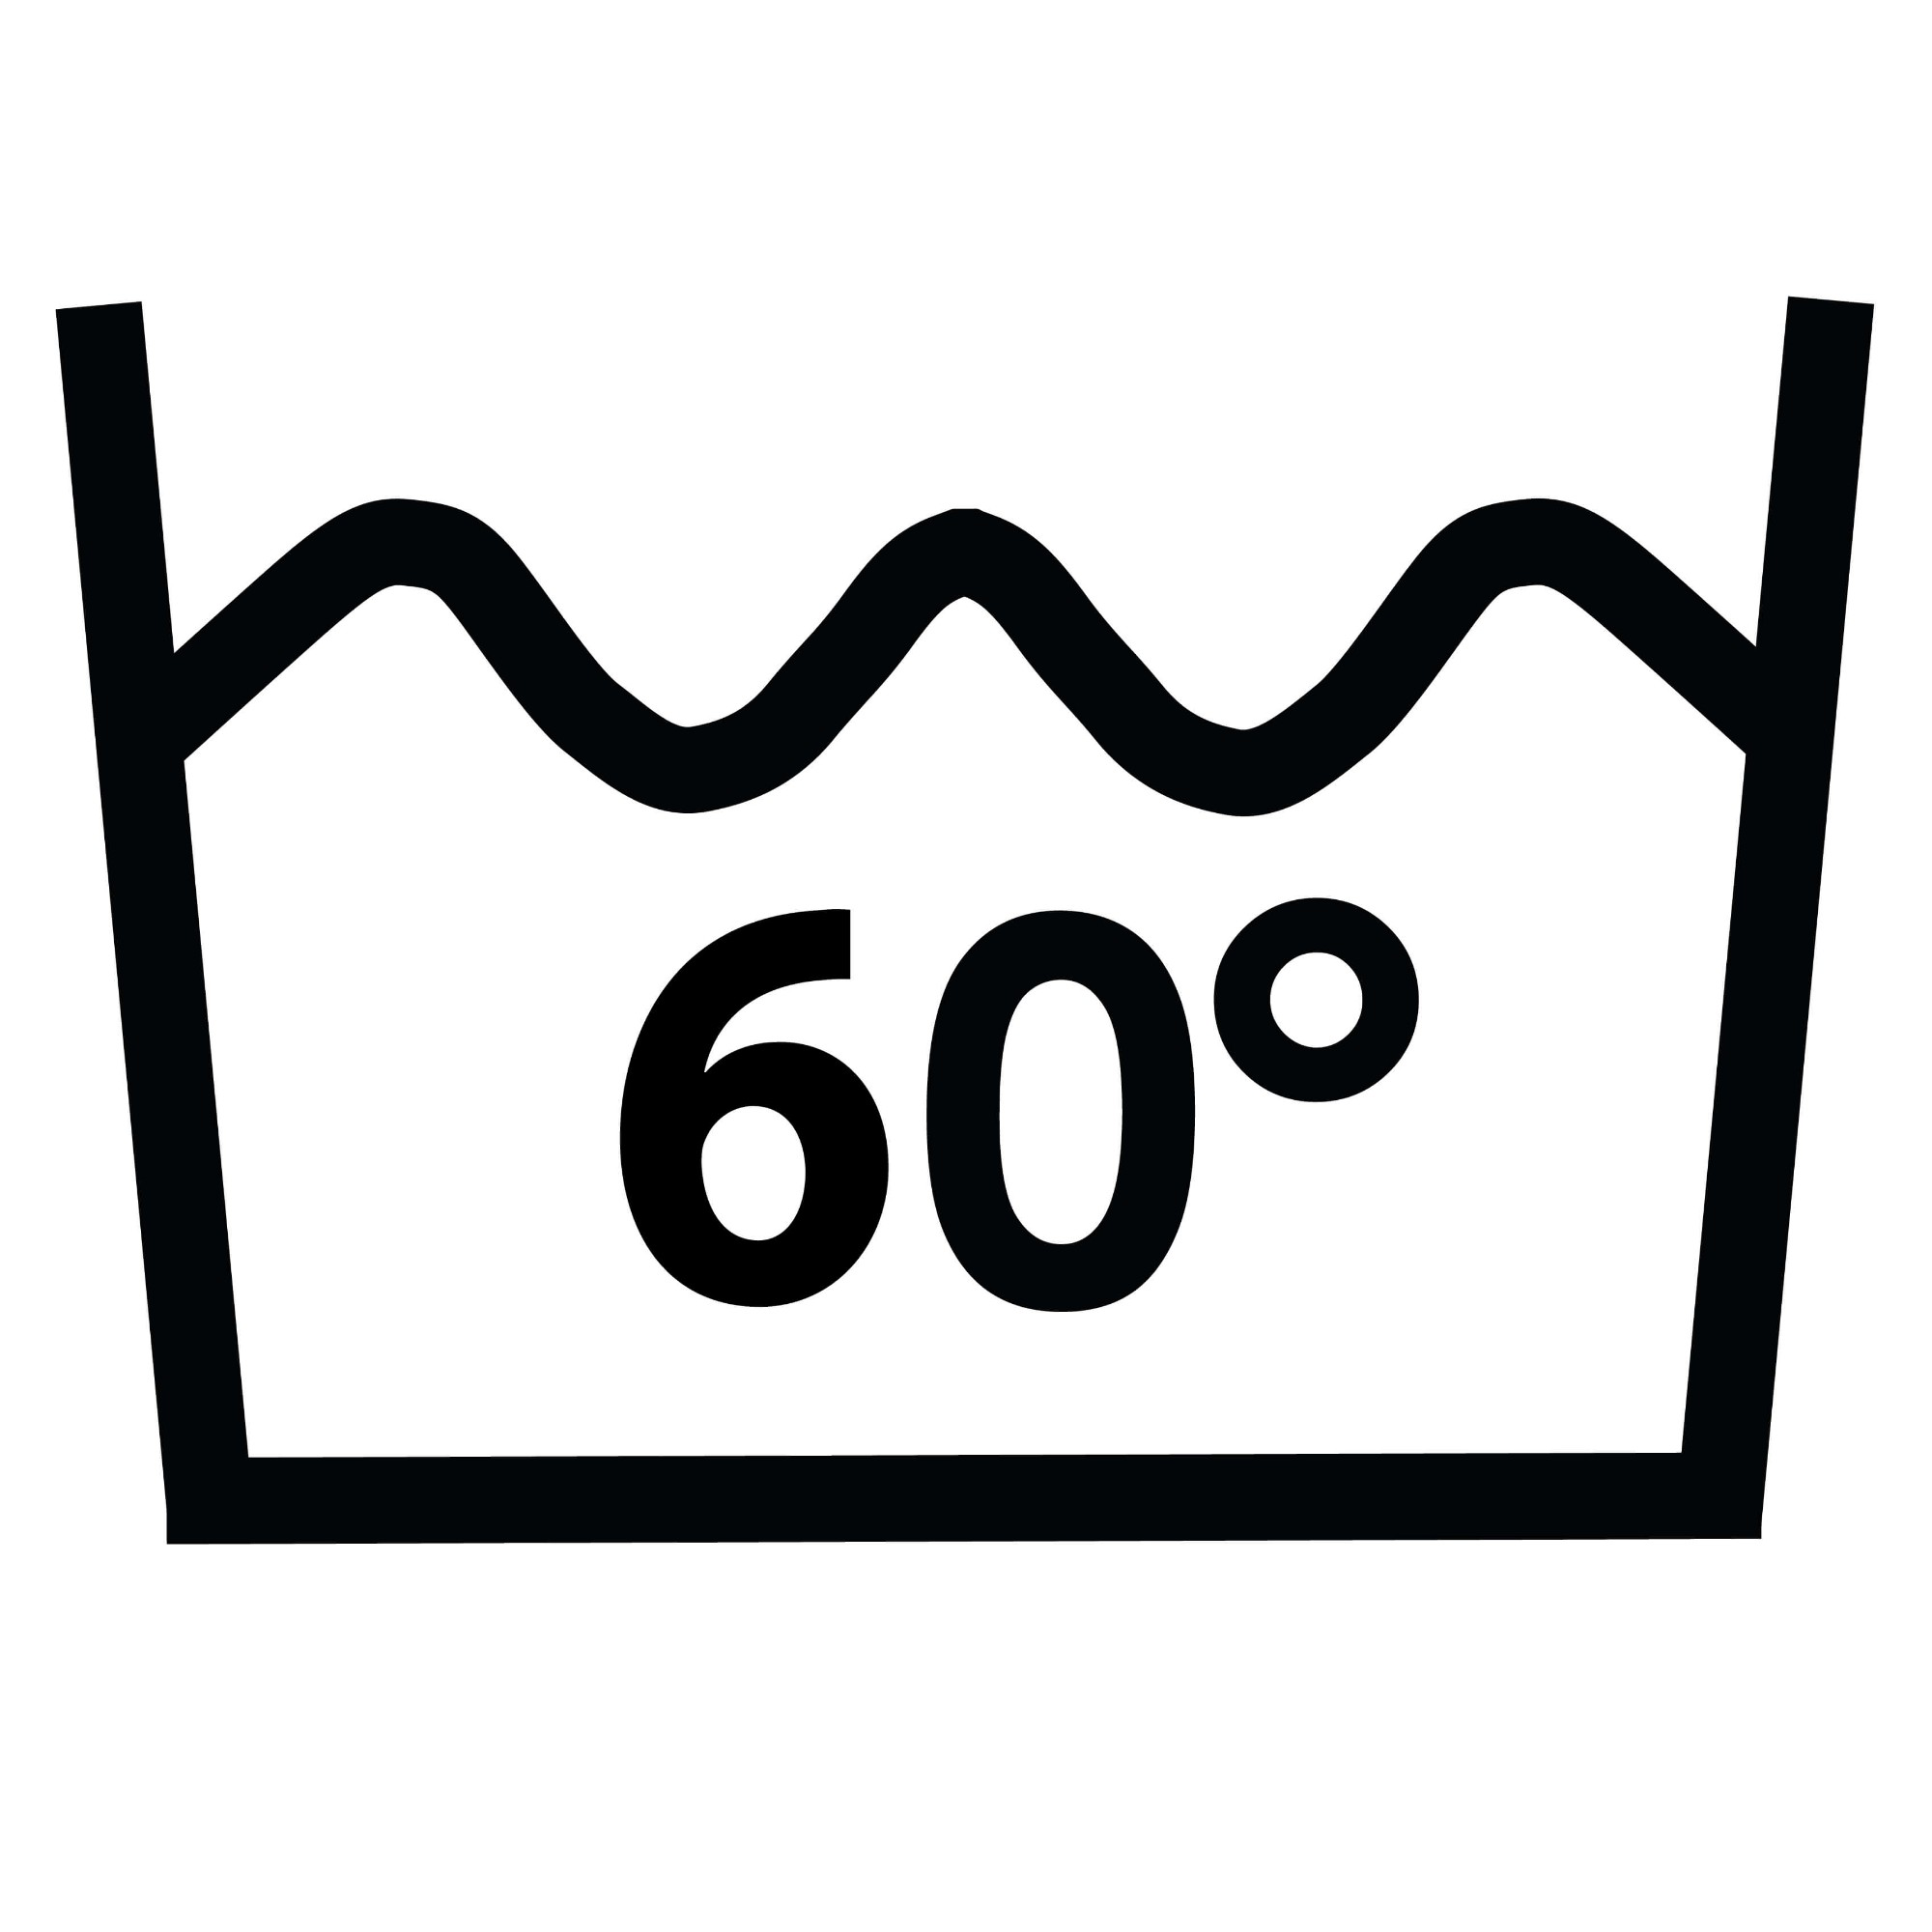 Wash temperature 60°C